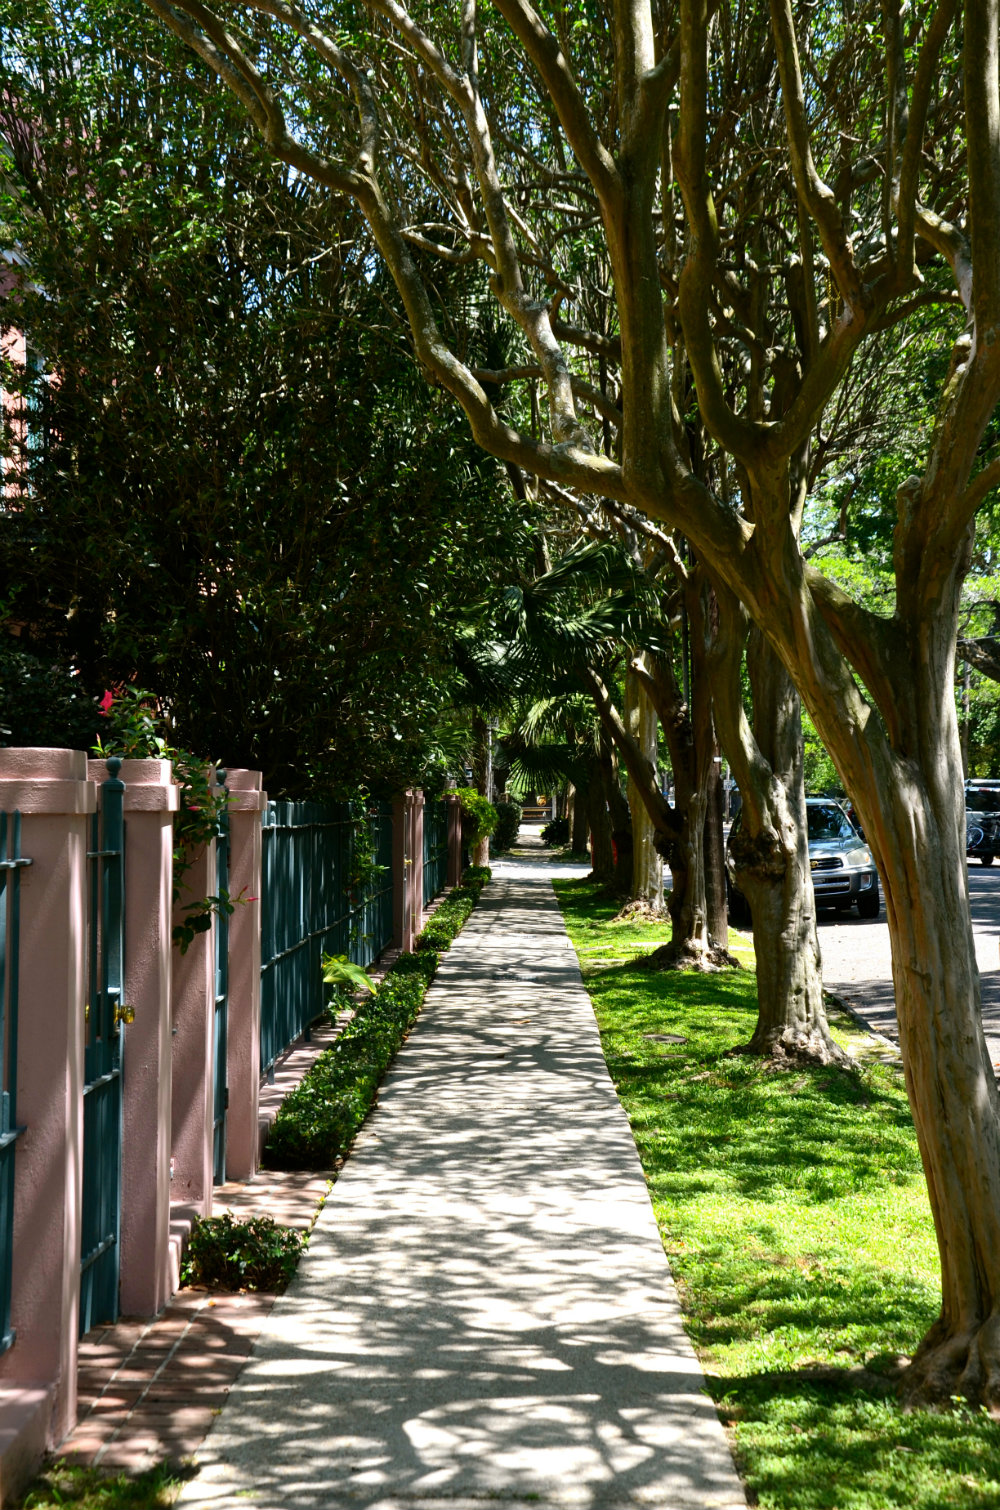 Walking throughout a tunnel of trees in the Garden District in New Orleans.